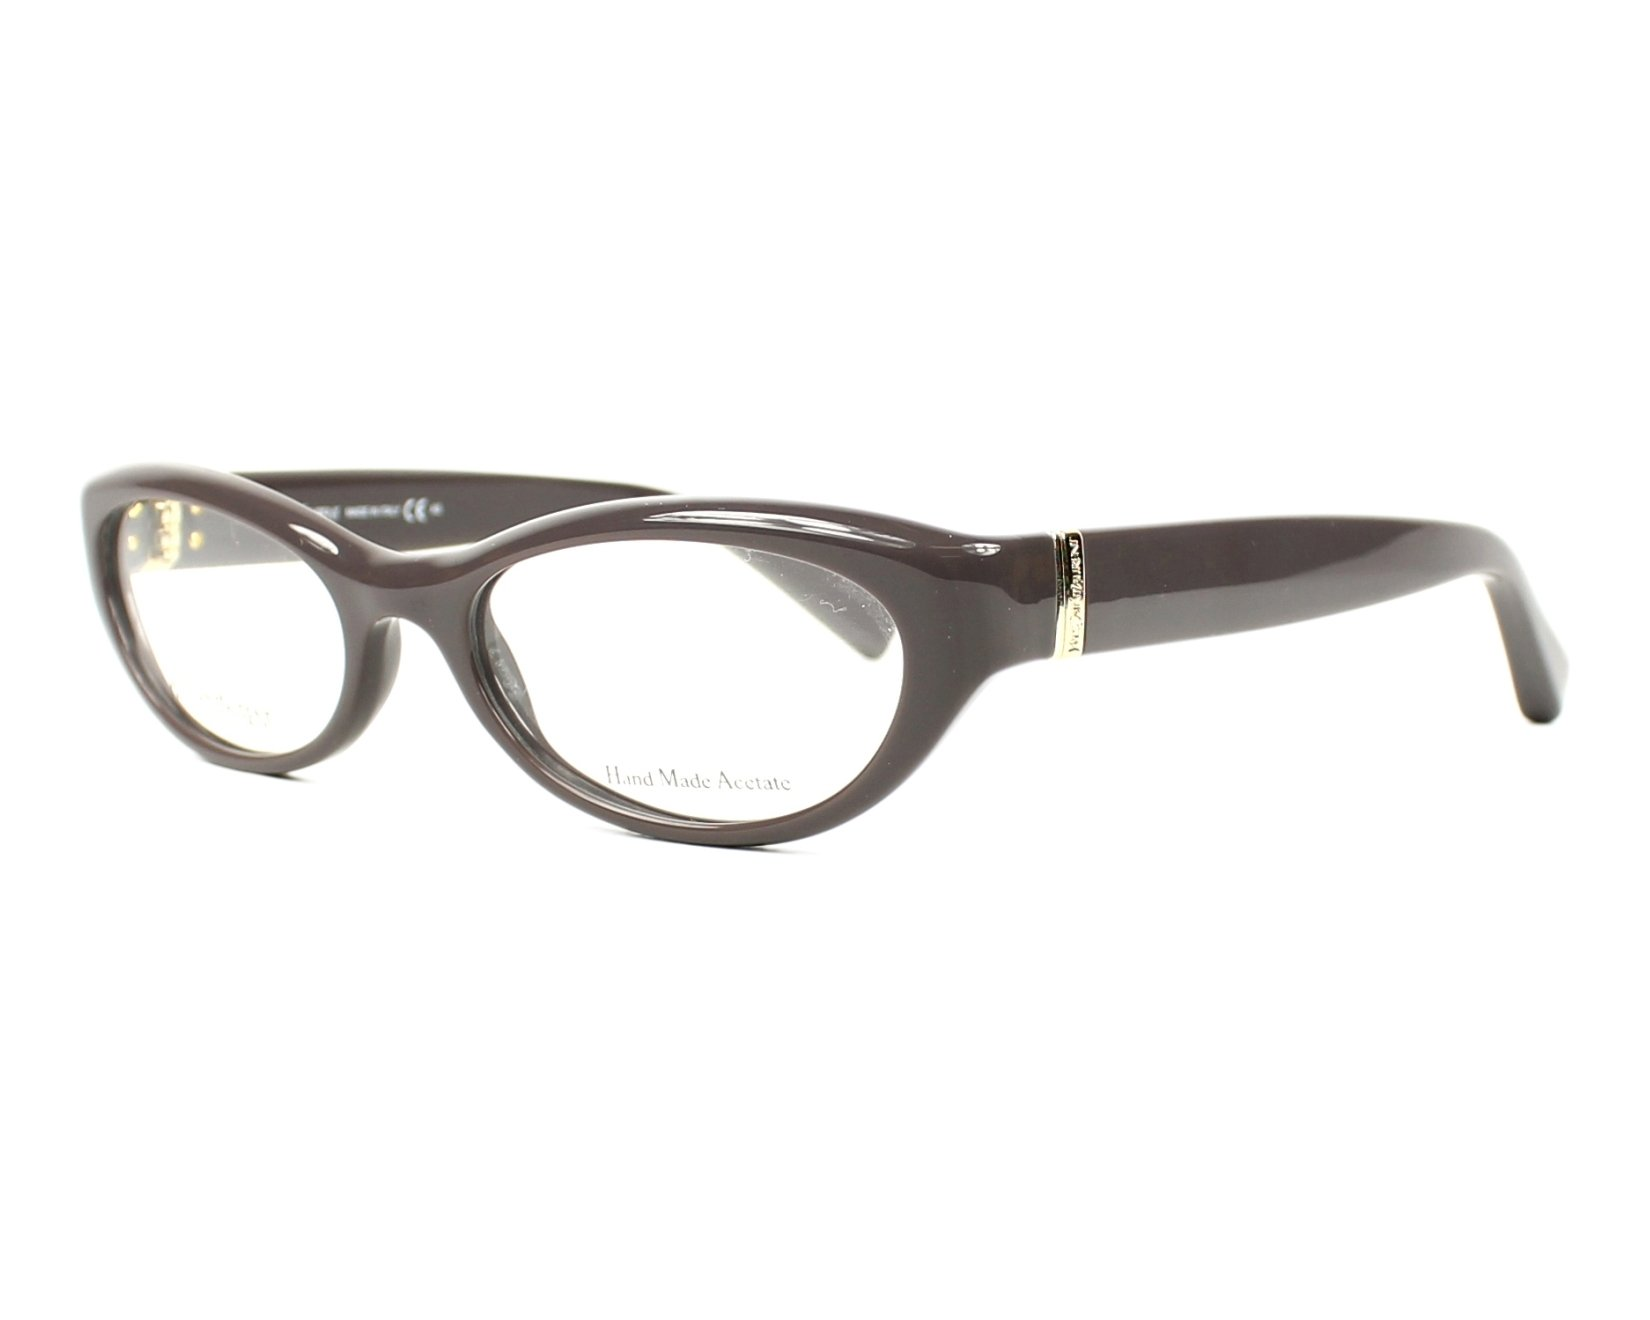 Yves Saint Laurent Frame Eyeglasses : Order your Yves Saint Laurent eyeglasses YSL6318 I1D 50 today